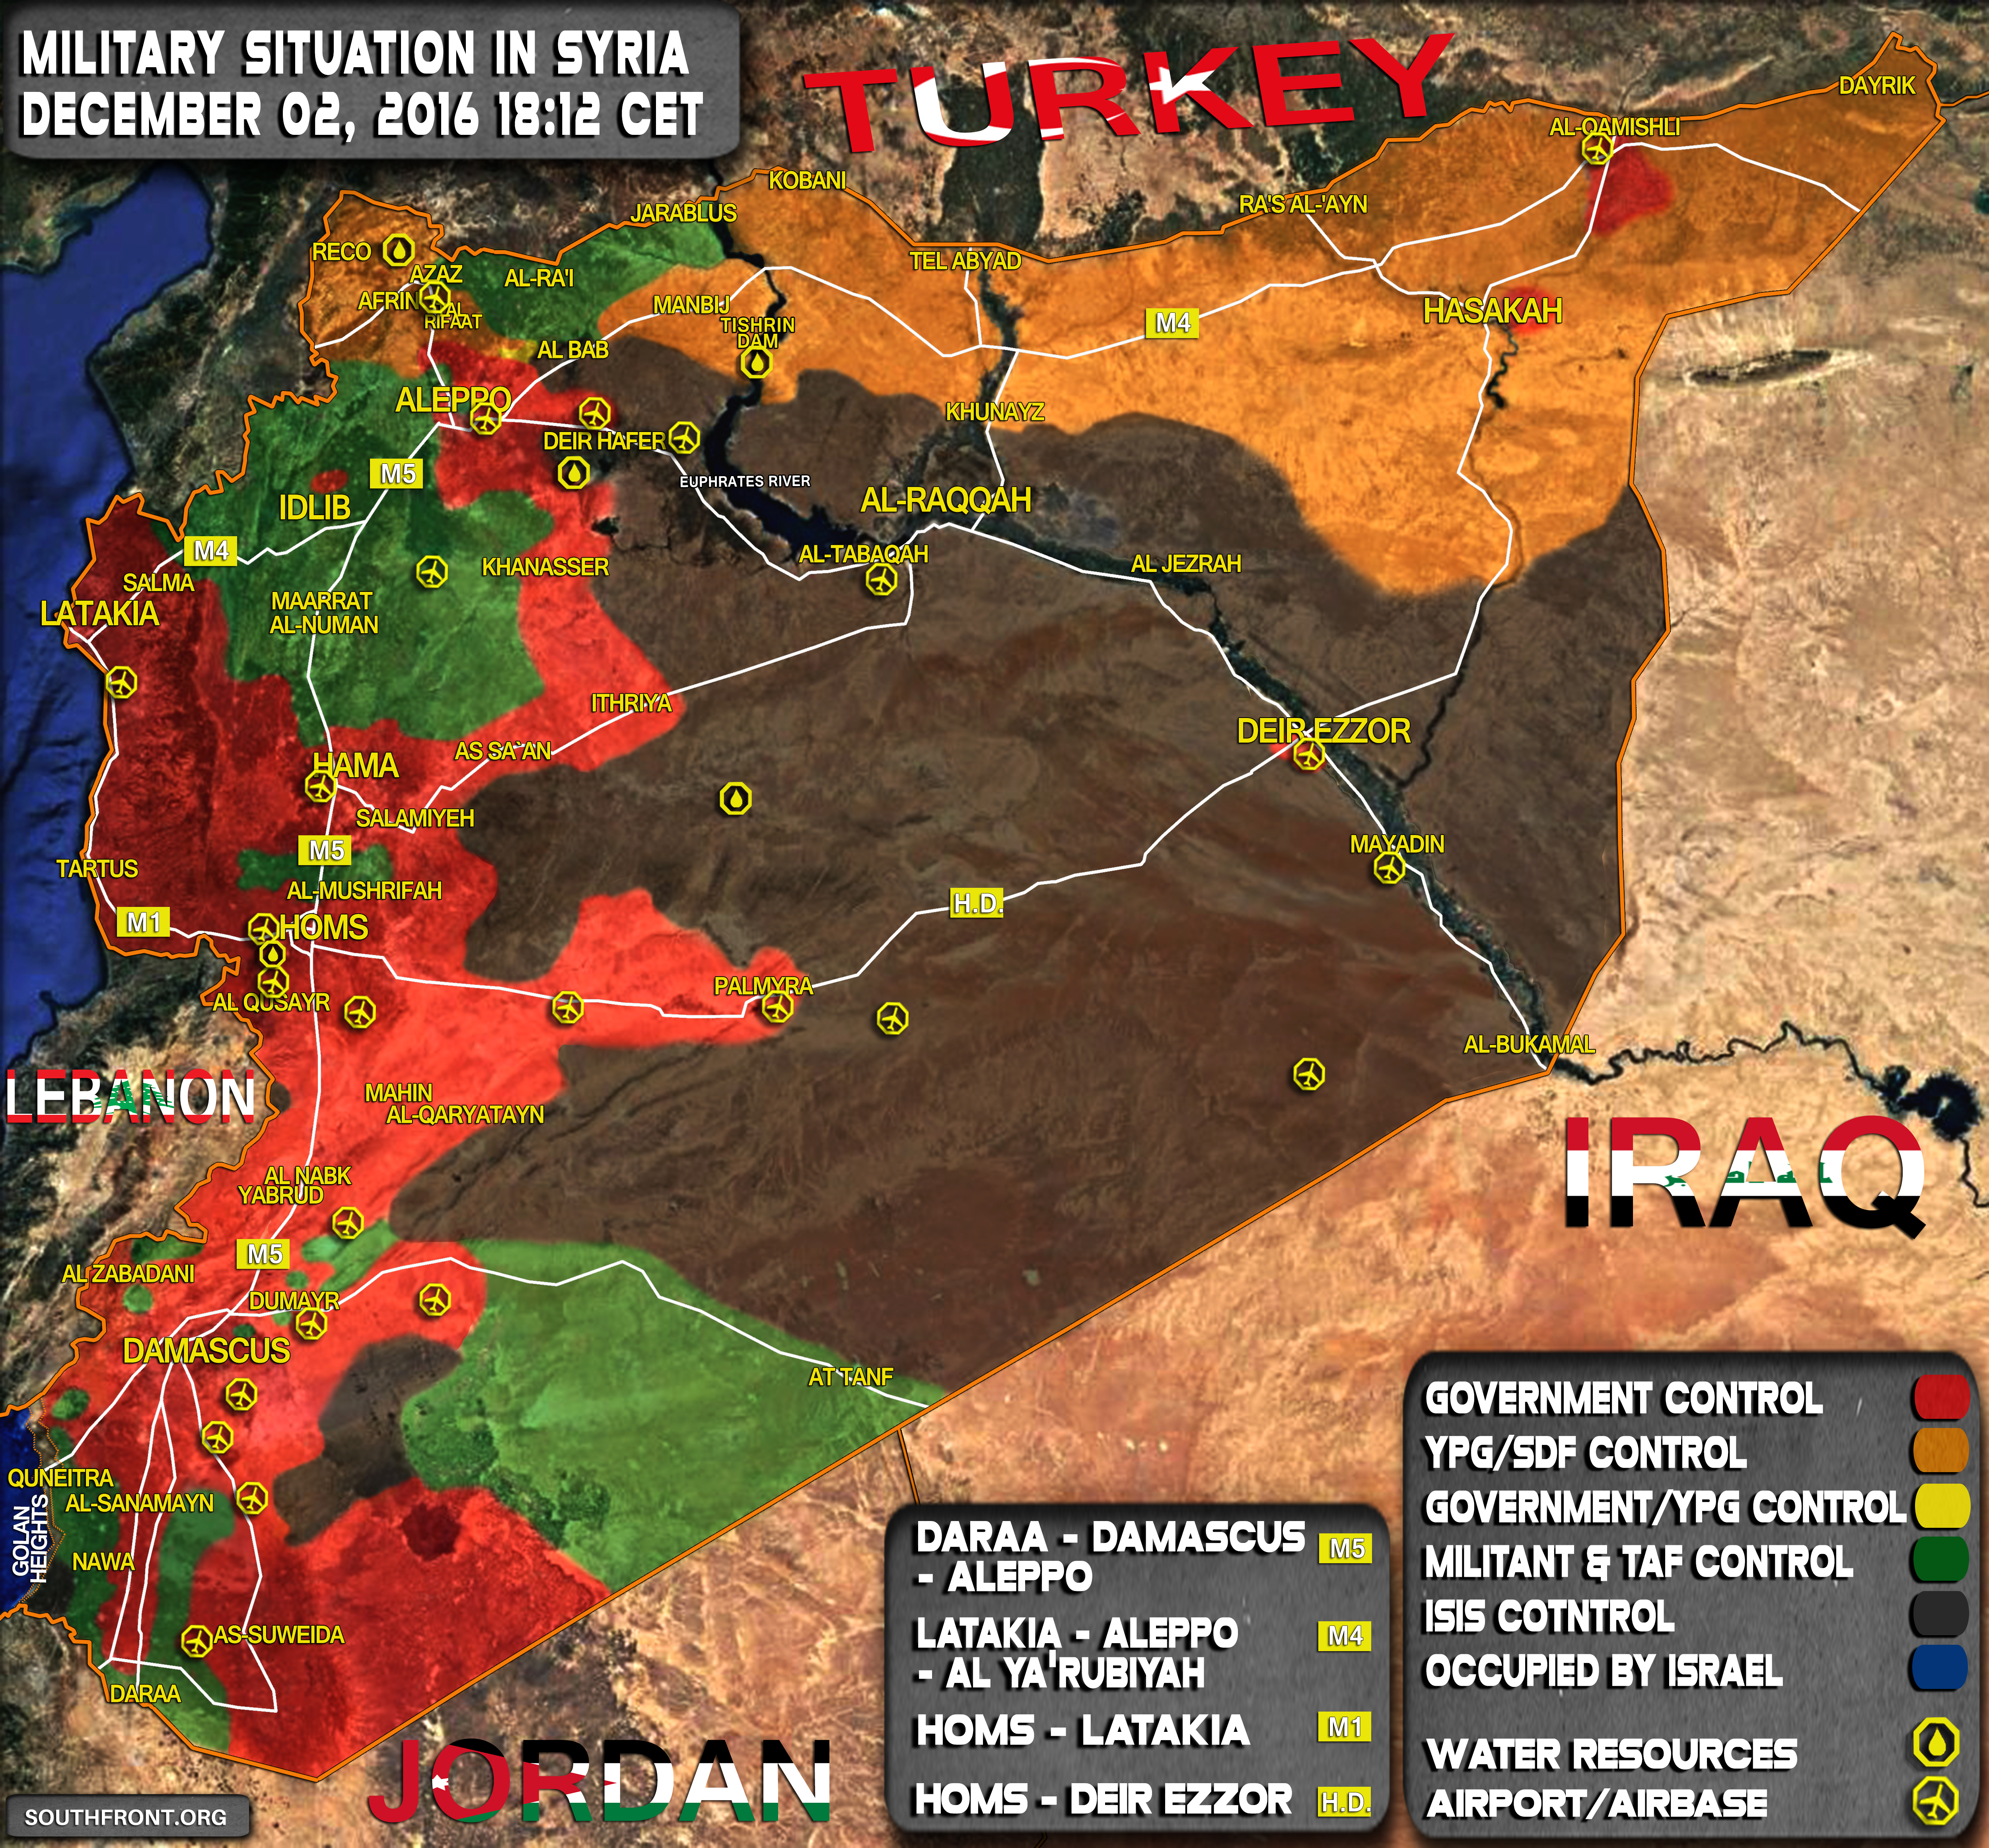 Military Situation in Syria on December 2, 2016